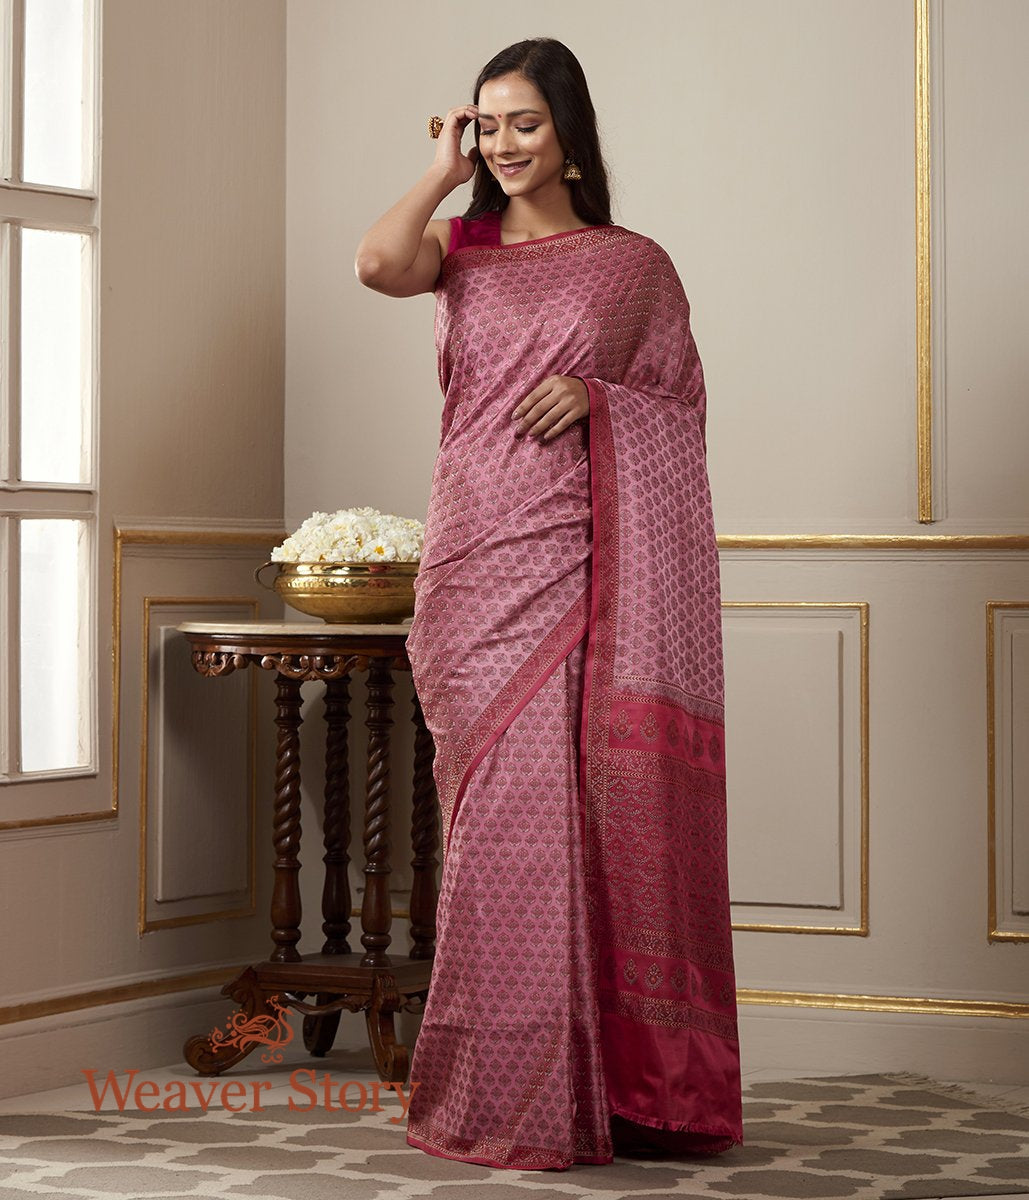 Handwoven Sanganer Booti Tanchoi in Shades of Pink